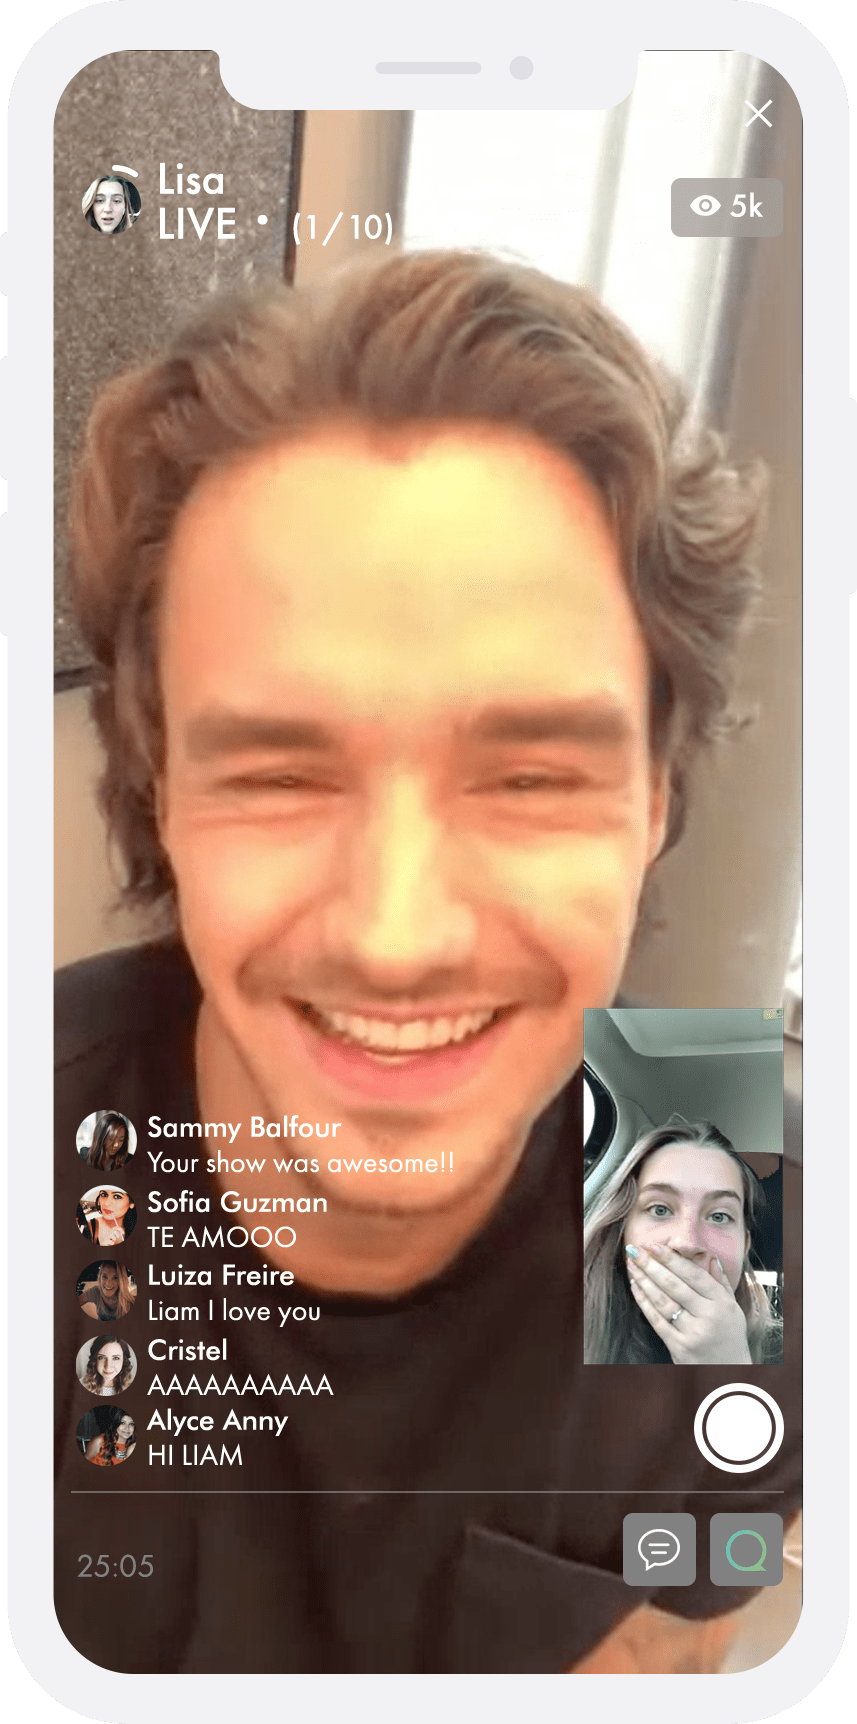 Liam Payne live video chatting to a fan on QJAM